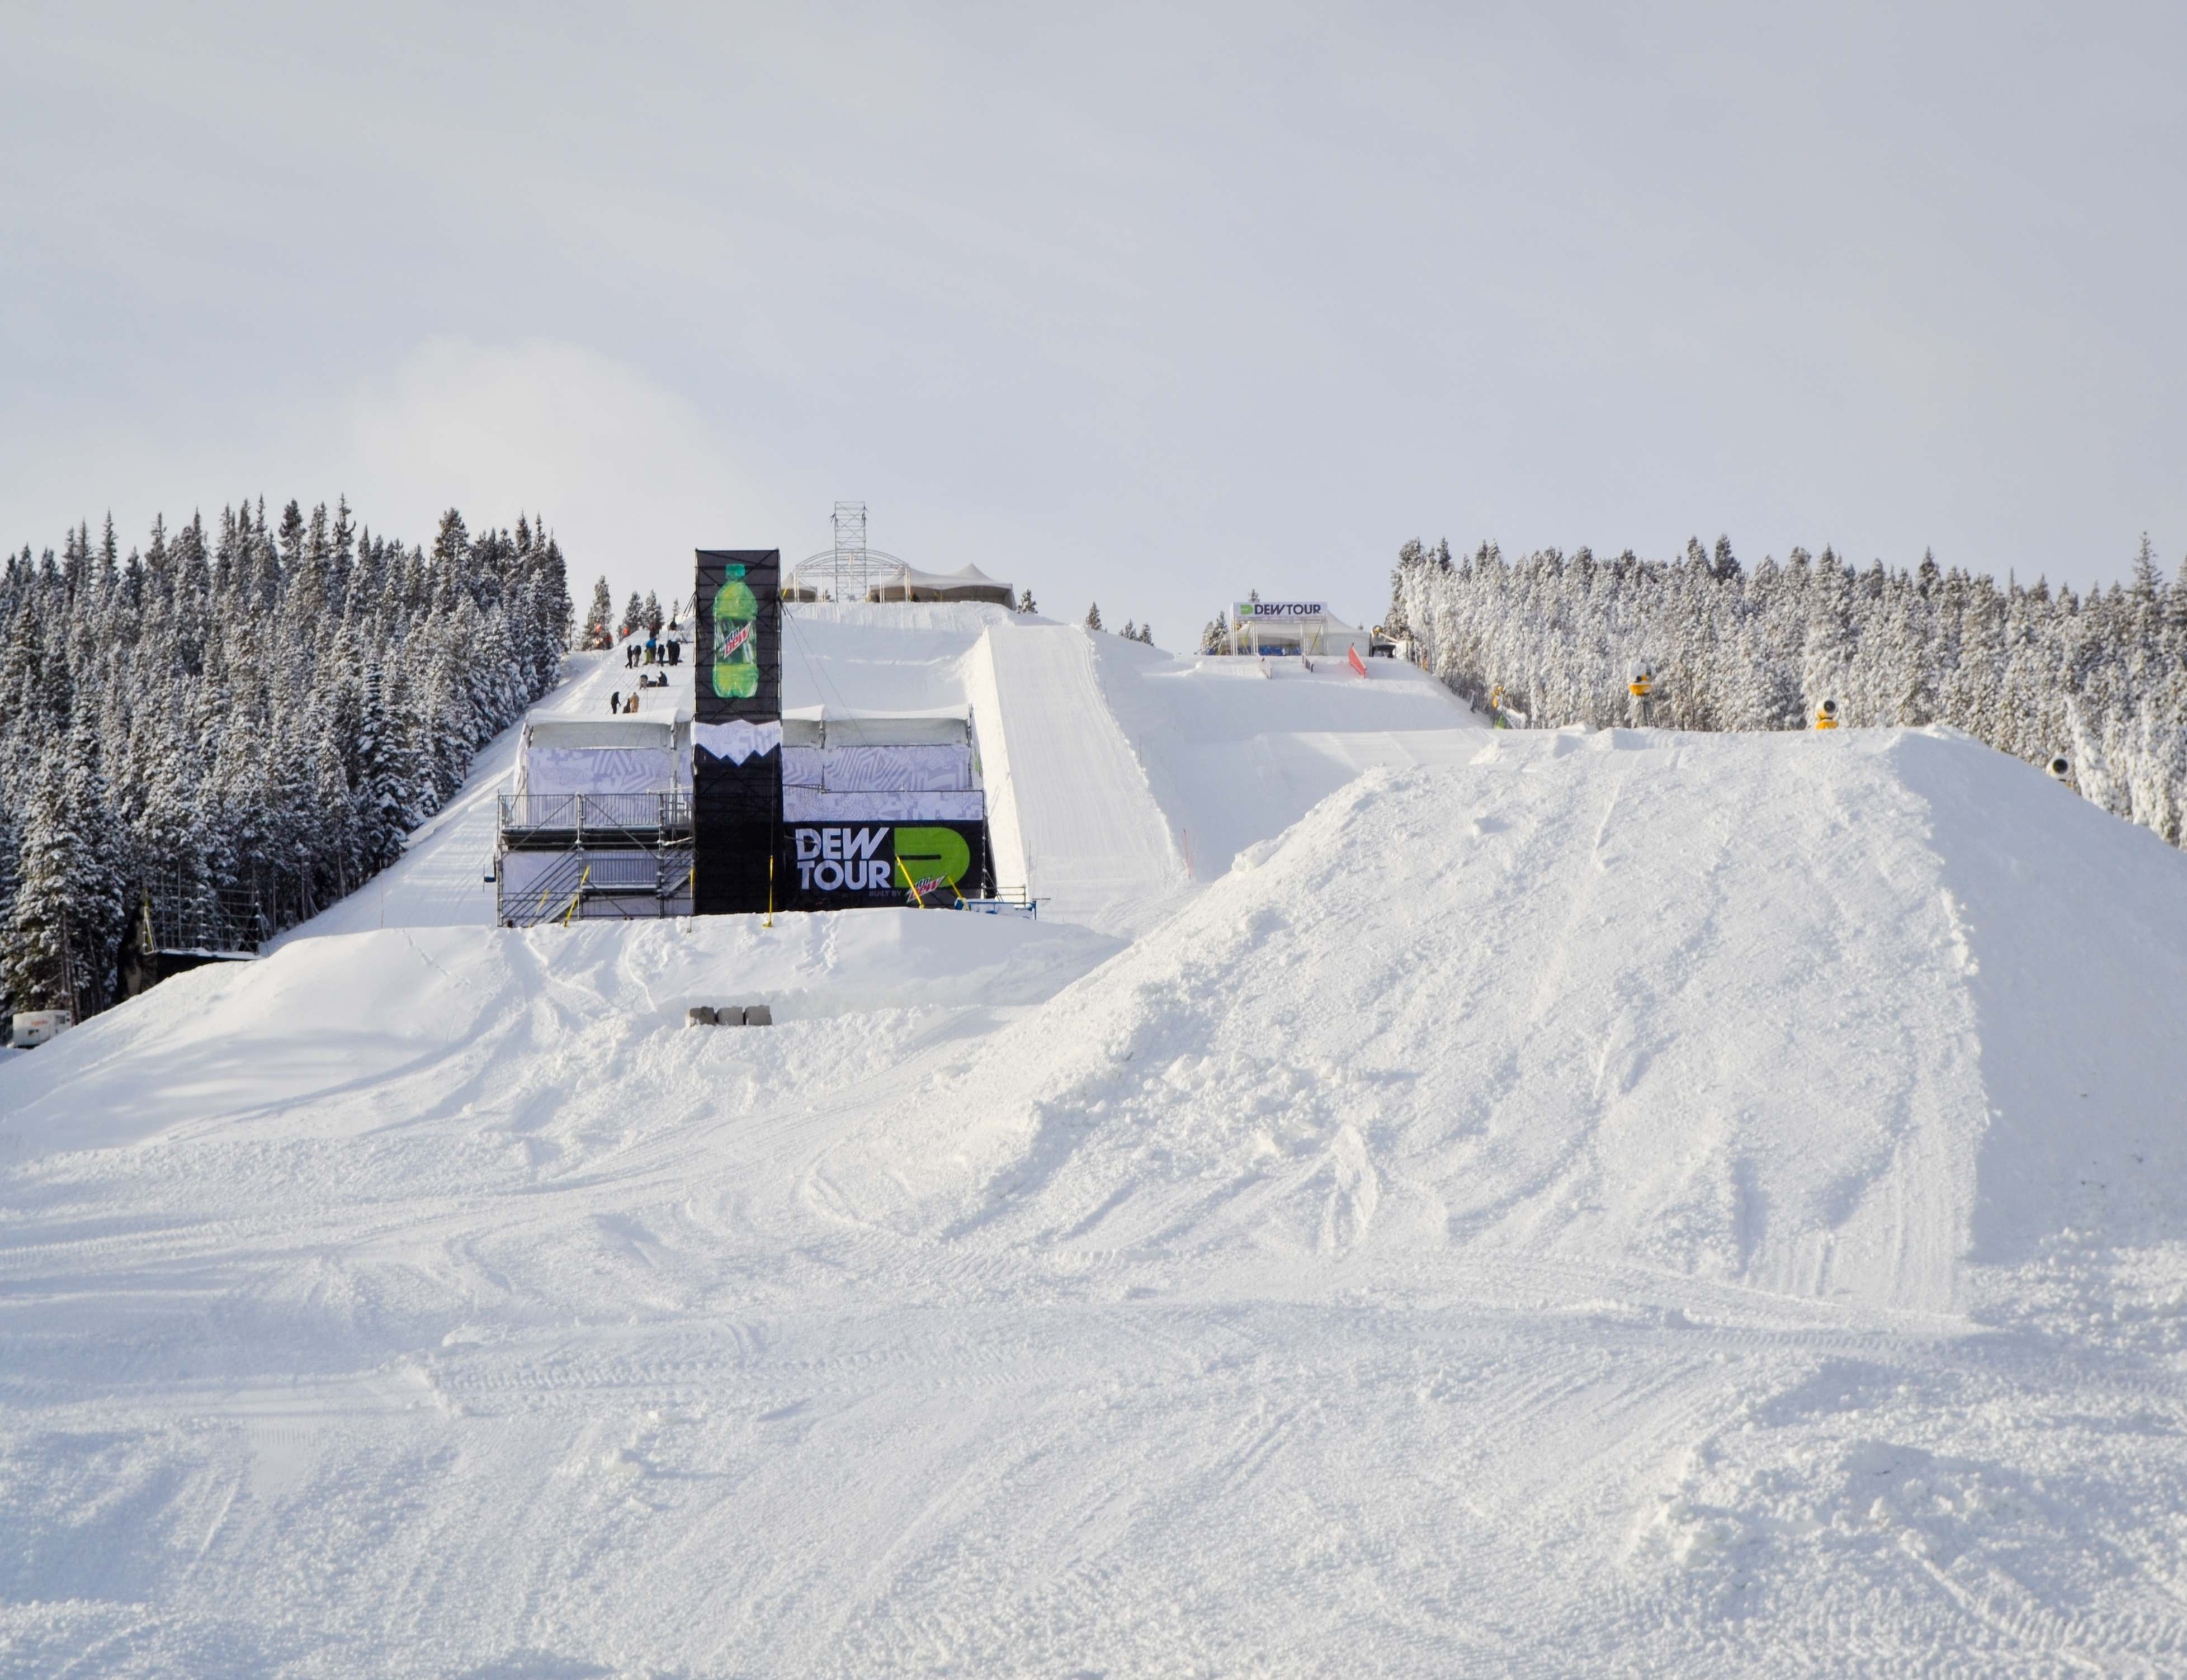 Looking up the Dew Tour course